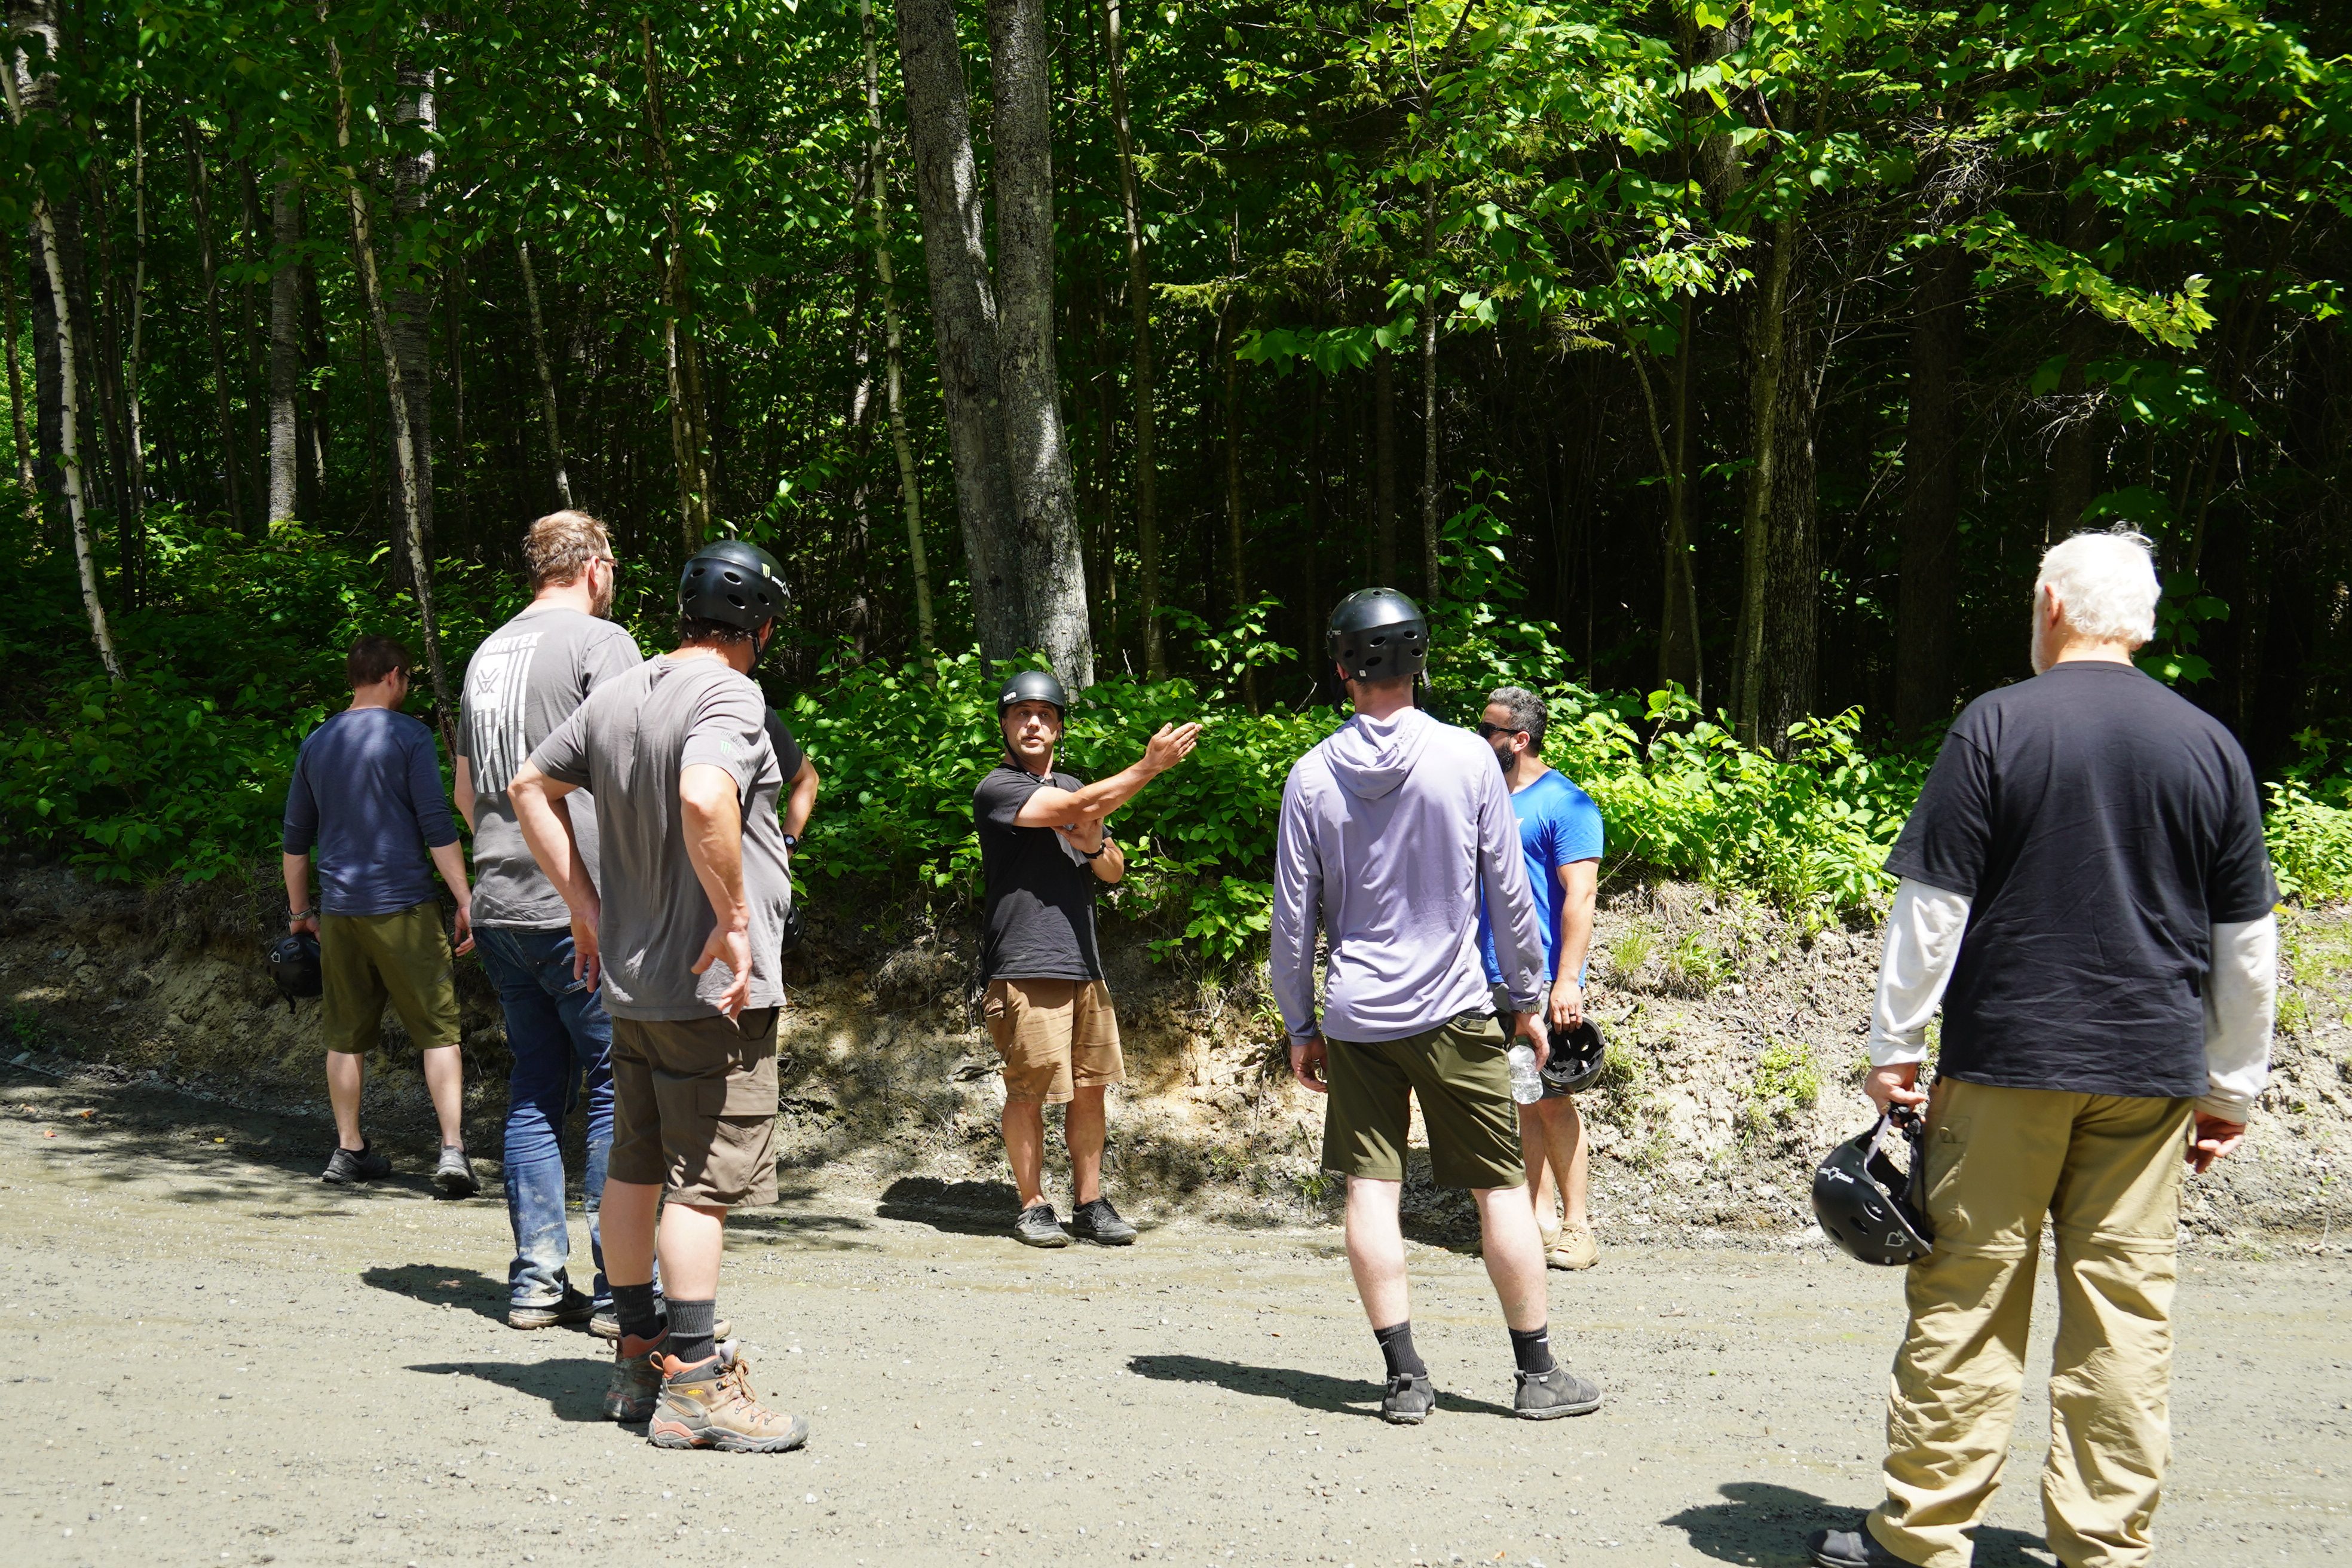 Instructor Jamie explaining road conditions and how to navigate the turns.